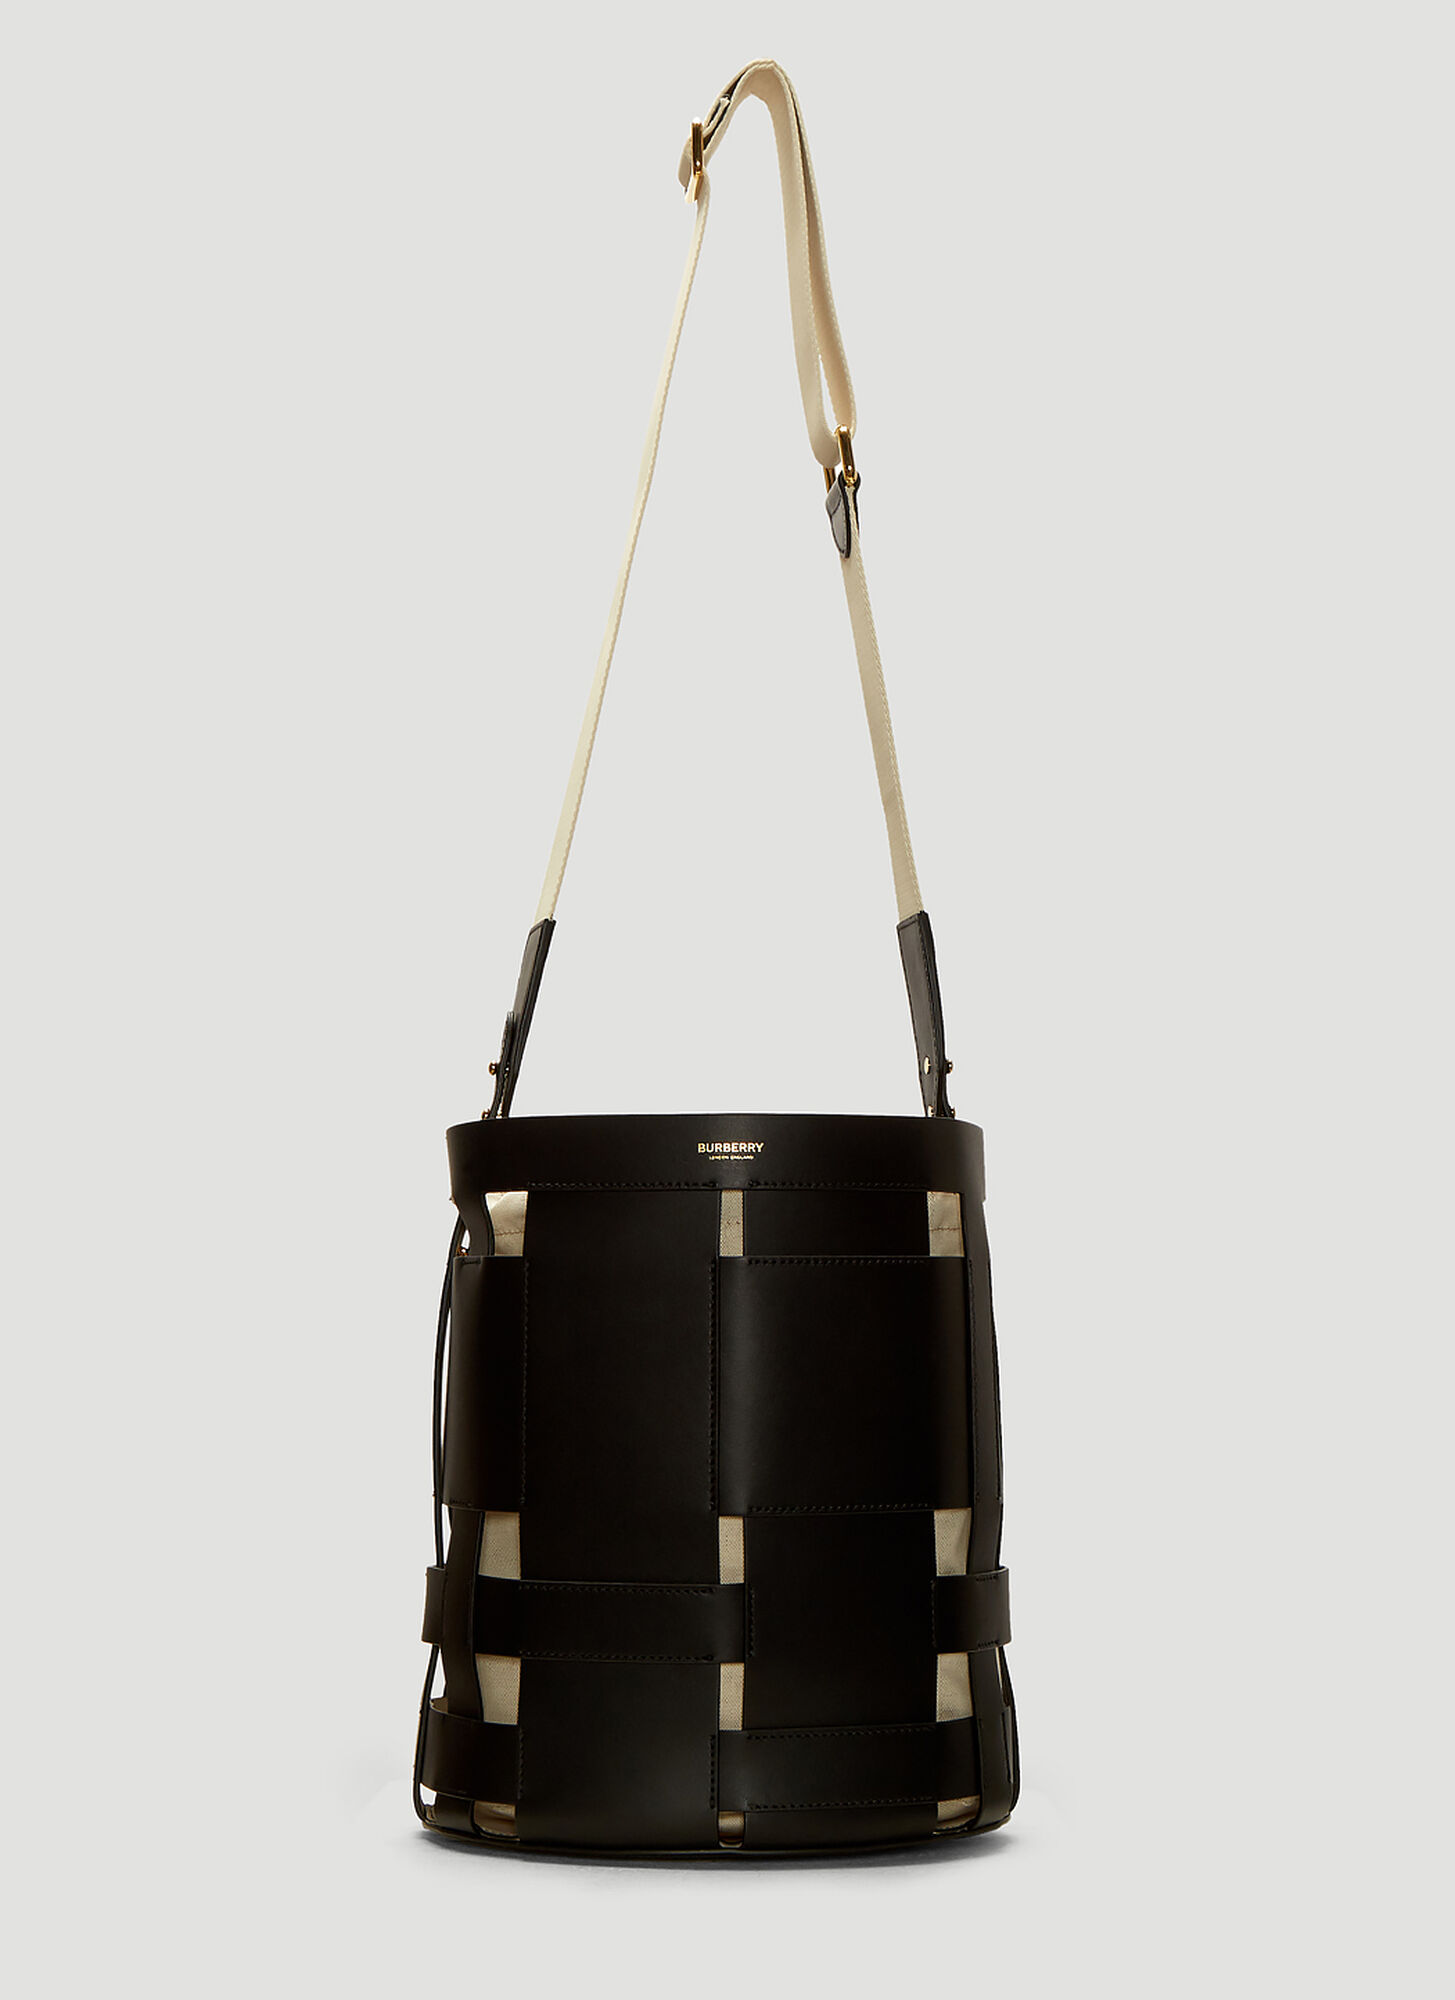 Burberry Woven Leather Bucket Bag in Black